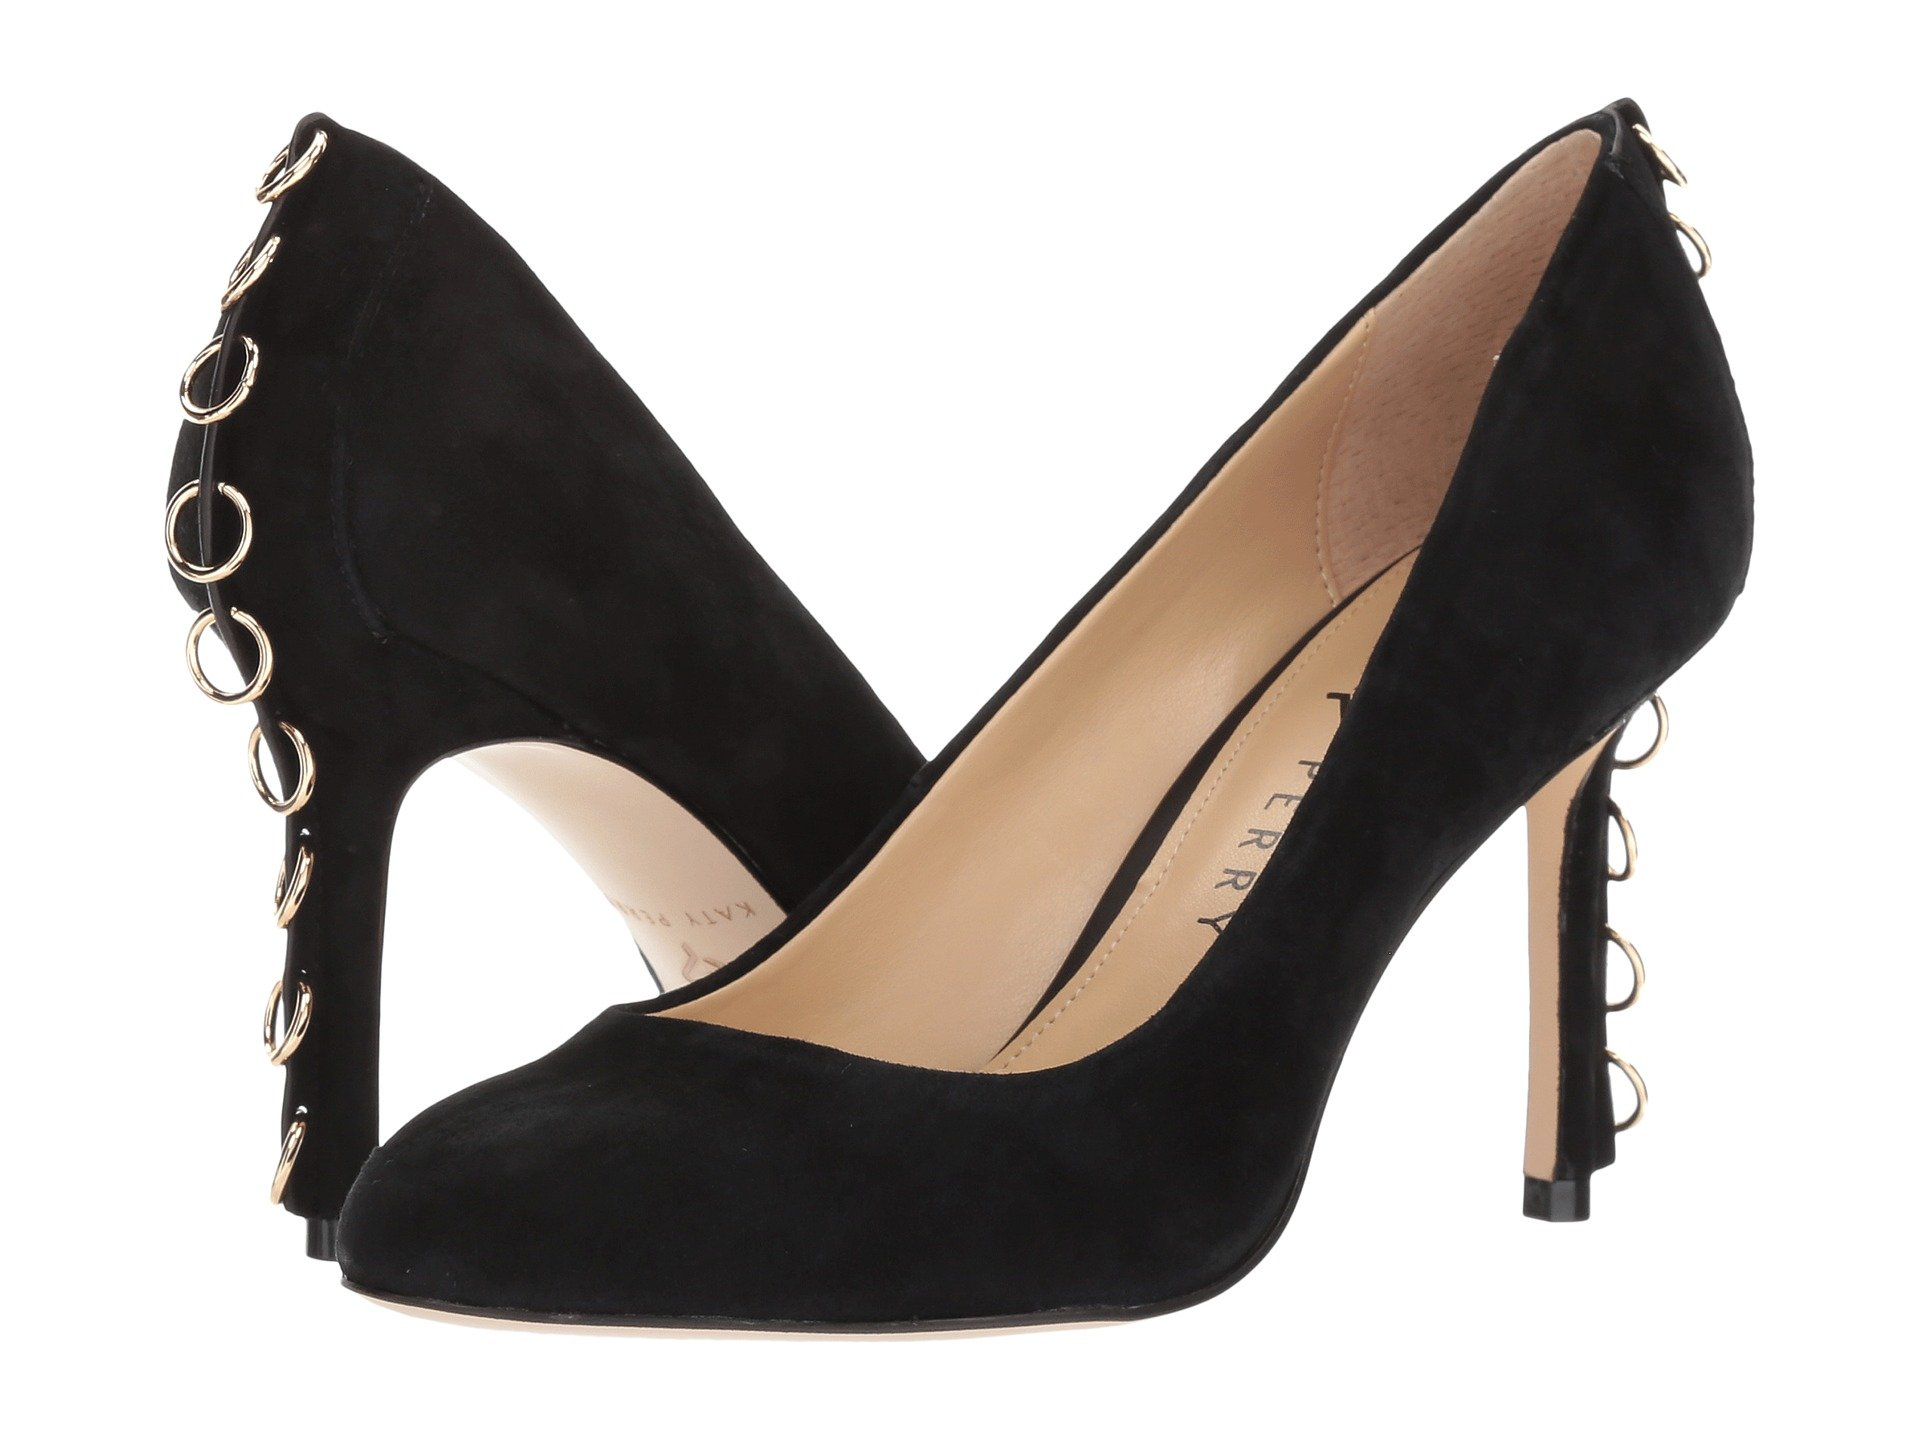 The Chrissie, Black